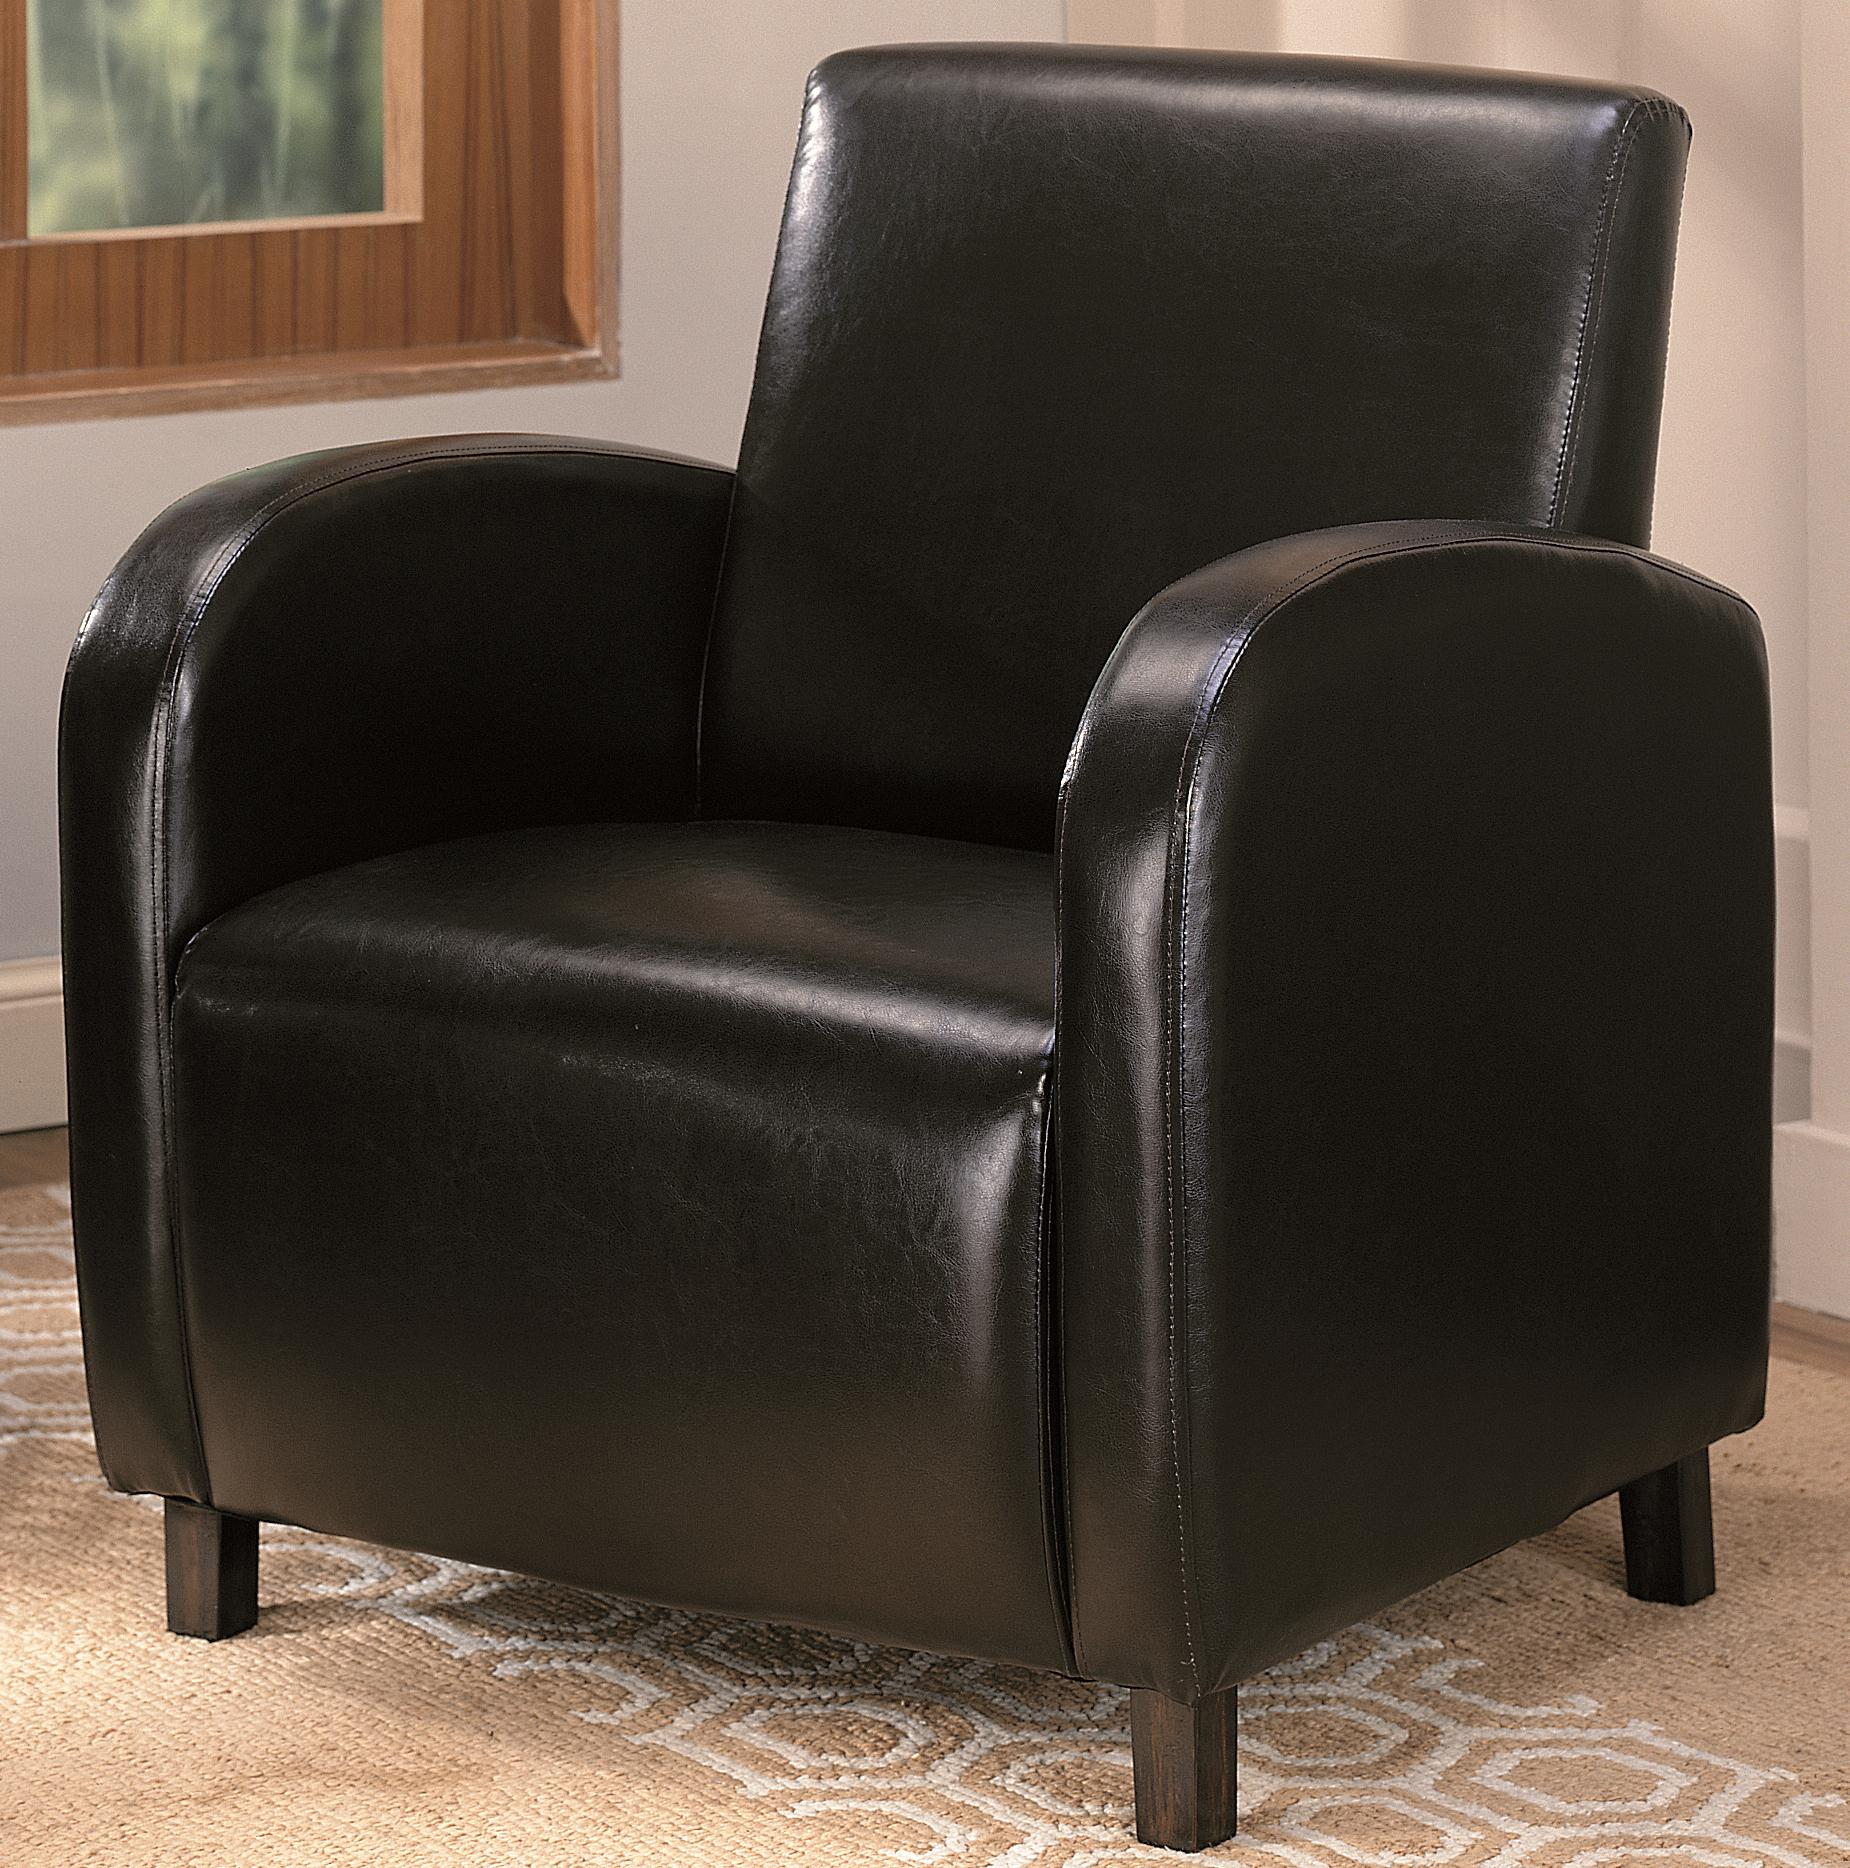 Coaster Accent Seating Chair - Item Number: 900334